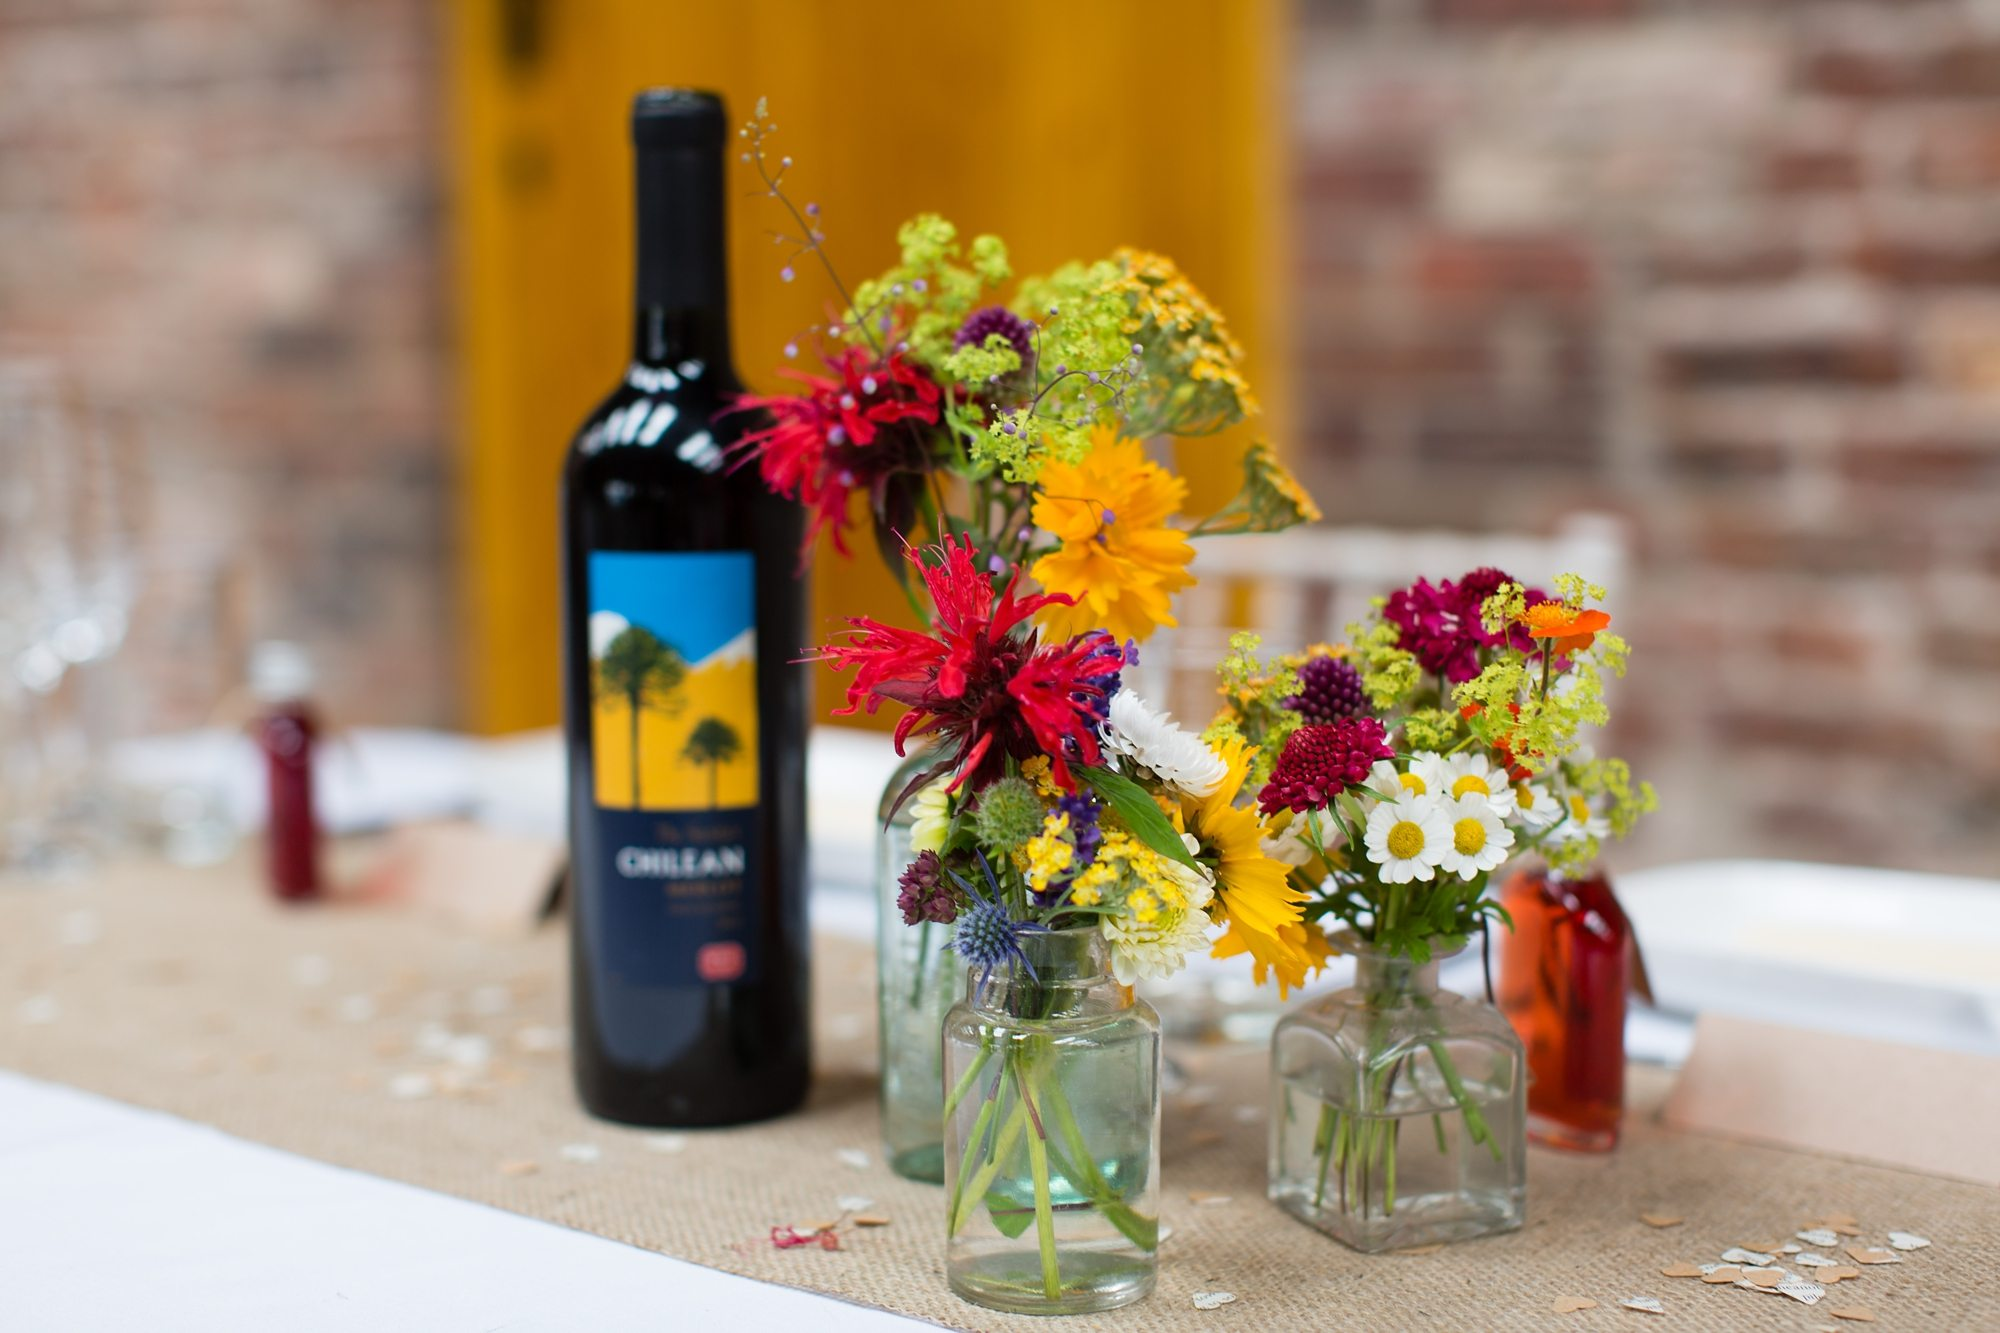 flowers in glass vases next to wine glass